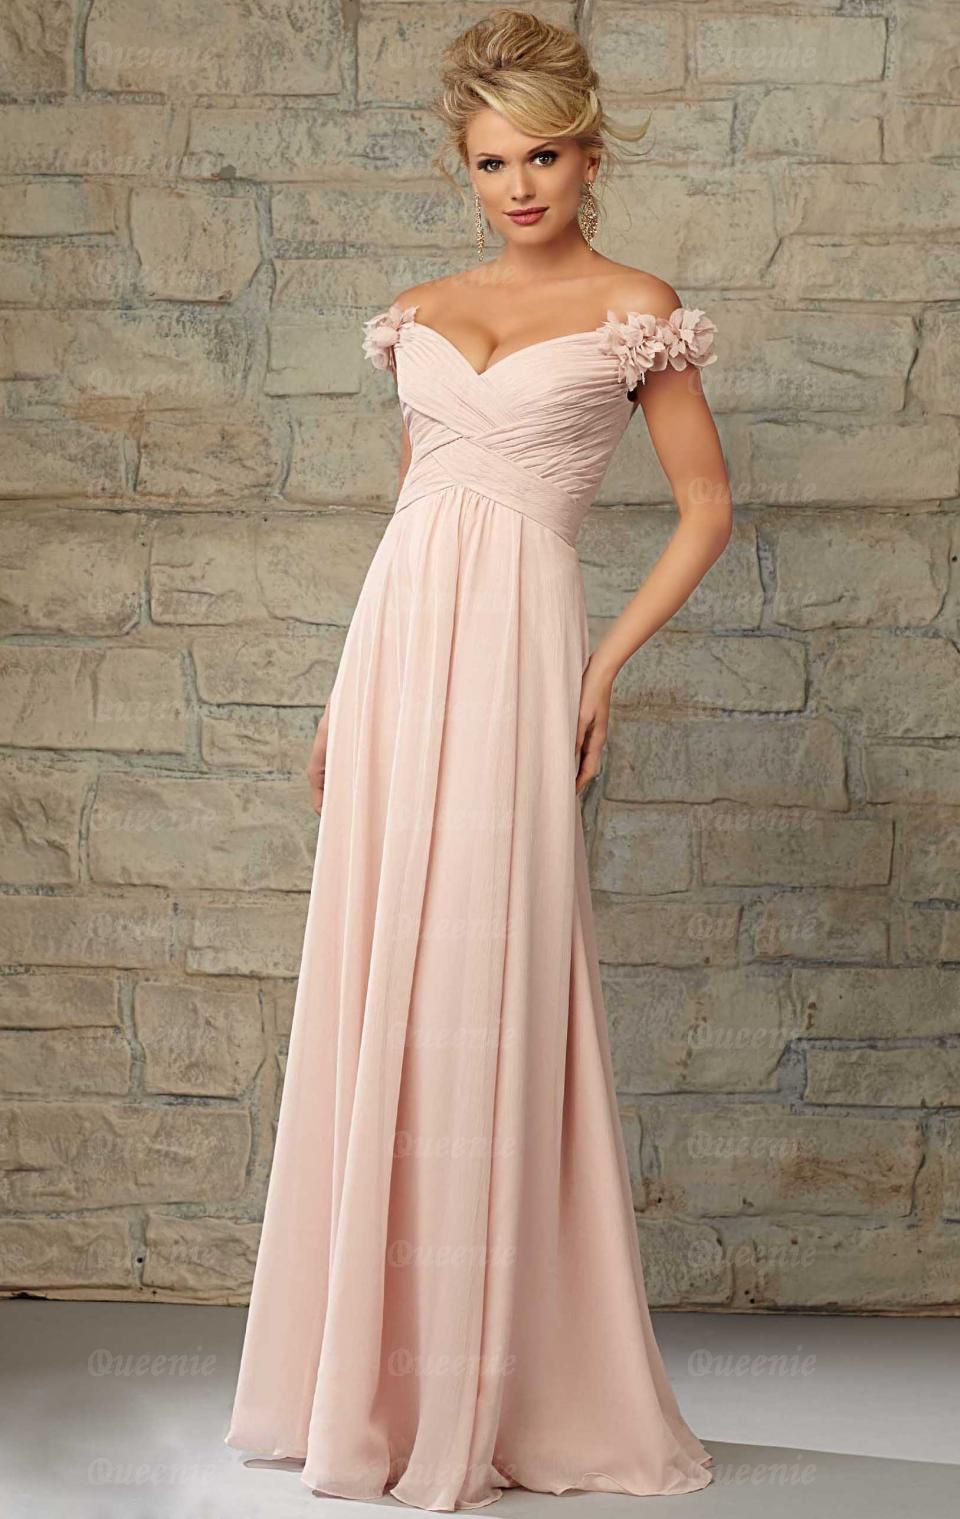 Elegant chiffon pink bridesmaid dresses pink bridesmaid dress angelina faccenda bridesmaids by mori lee 20453 ruffled off the shoulder long luxe chiffon bridesmaid dress designed by madeline gardner ombrellifo Gallery